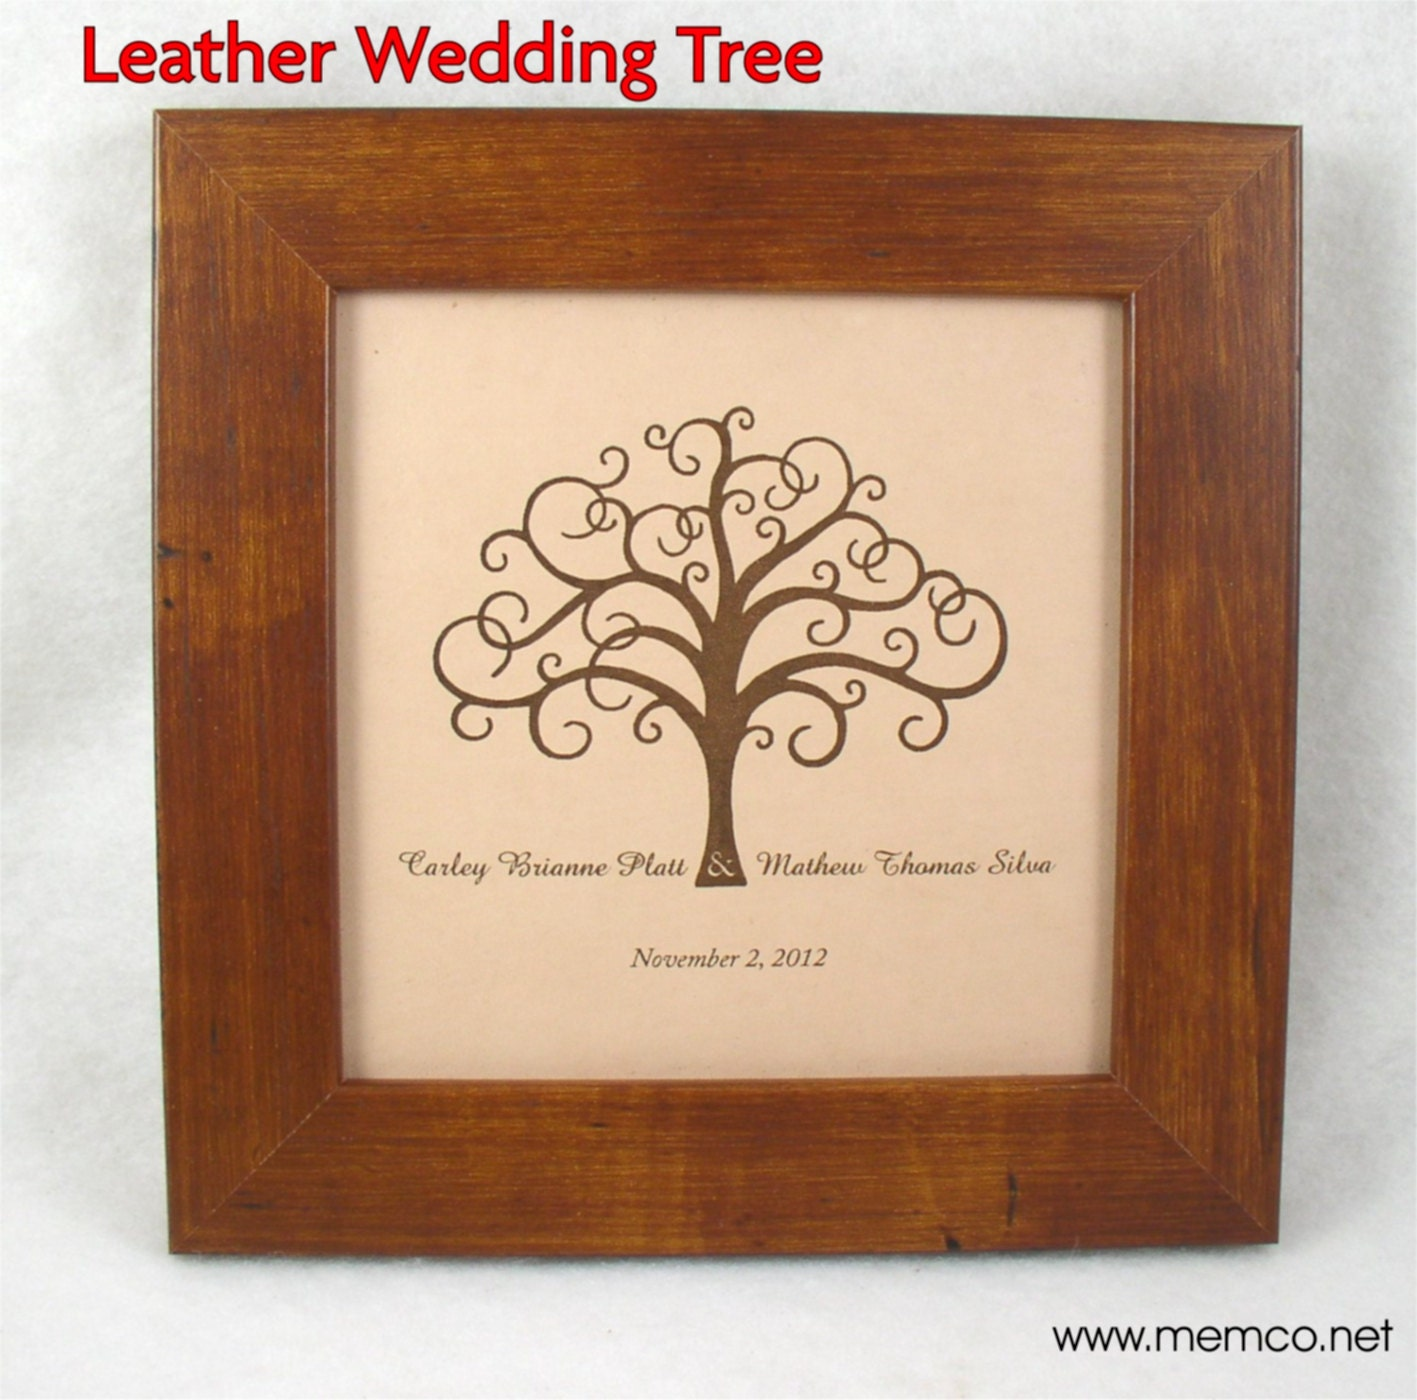 Wedding Gifts For Relatives : Leather Wedding or Anniversary Gift Family Tree Wedding